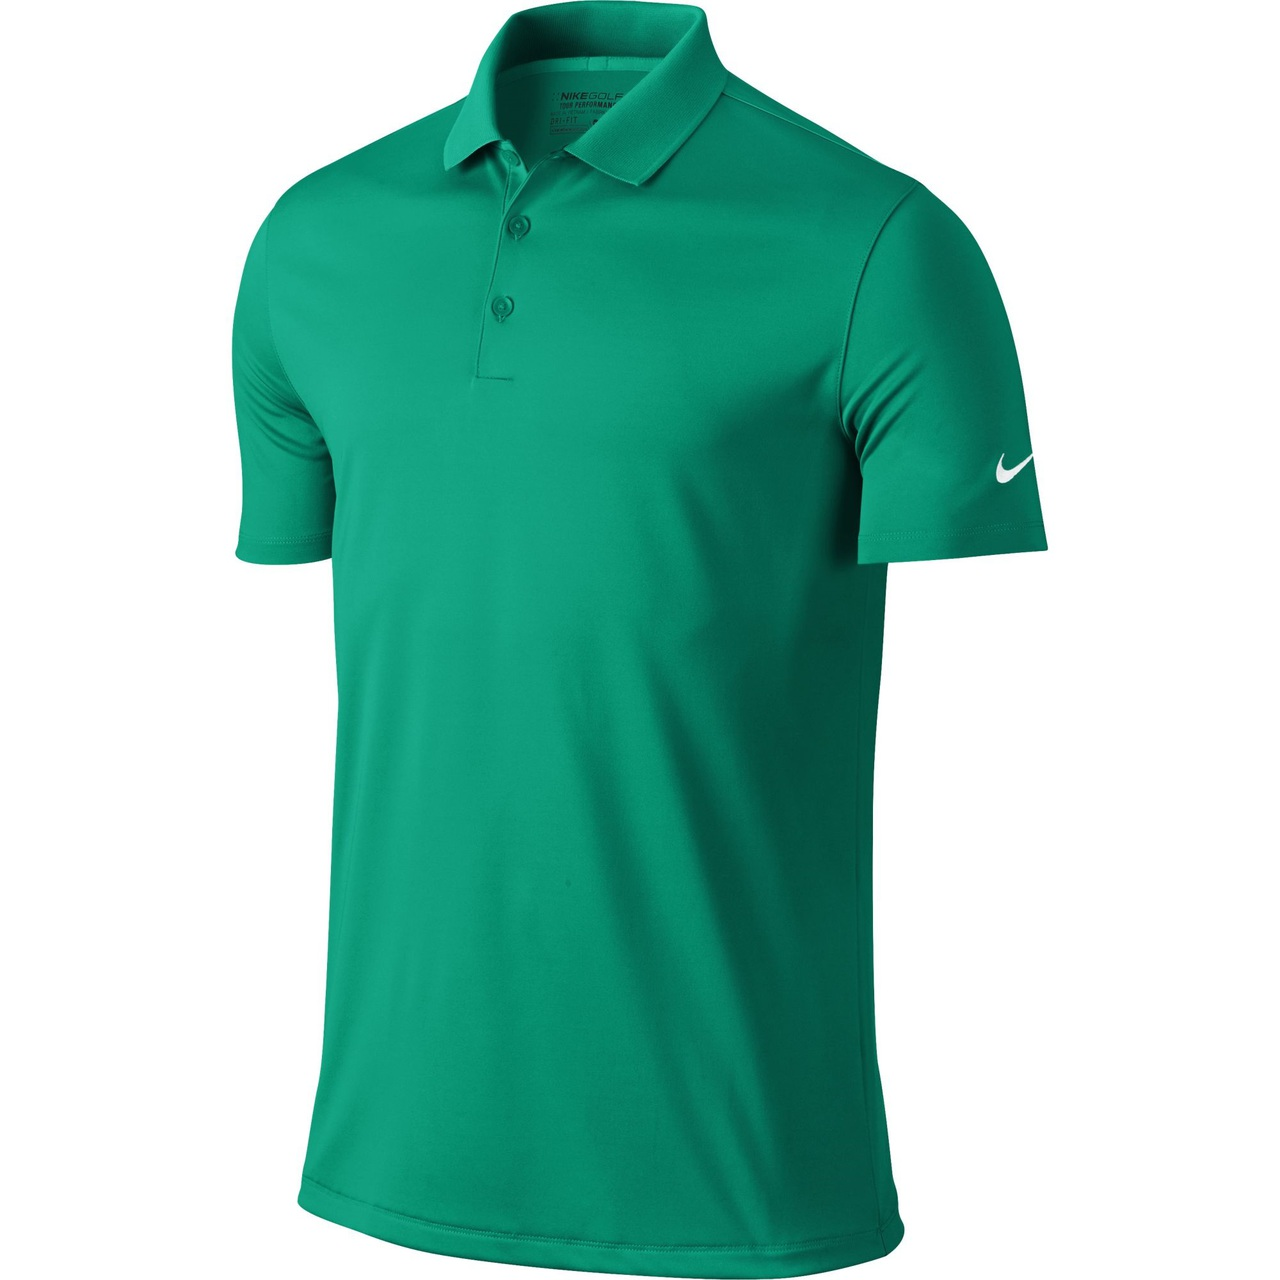 908c285d08885 Nike Golf Victory Solid Polo - Teal Charge/White